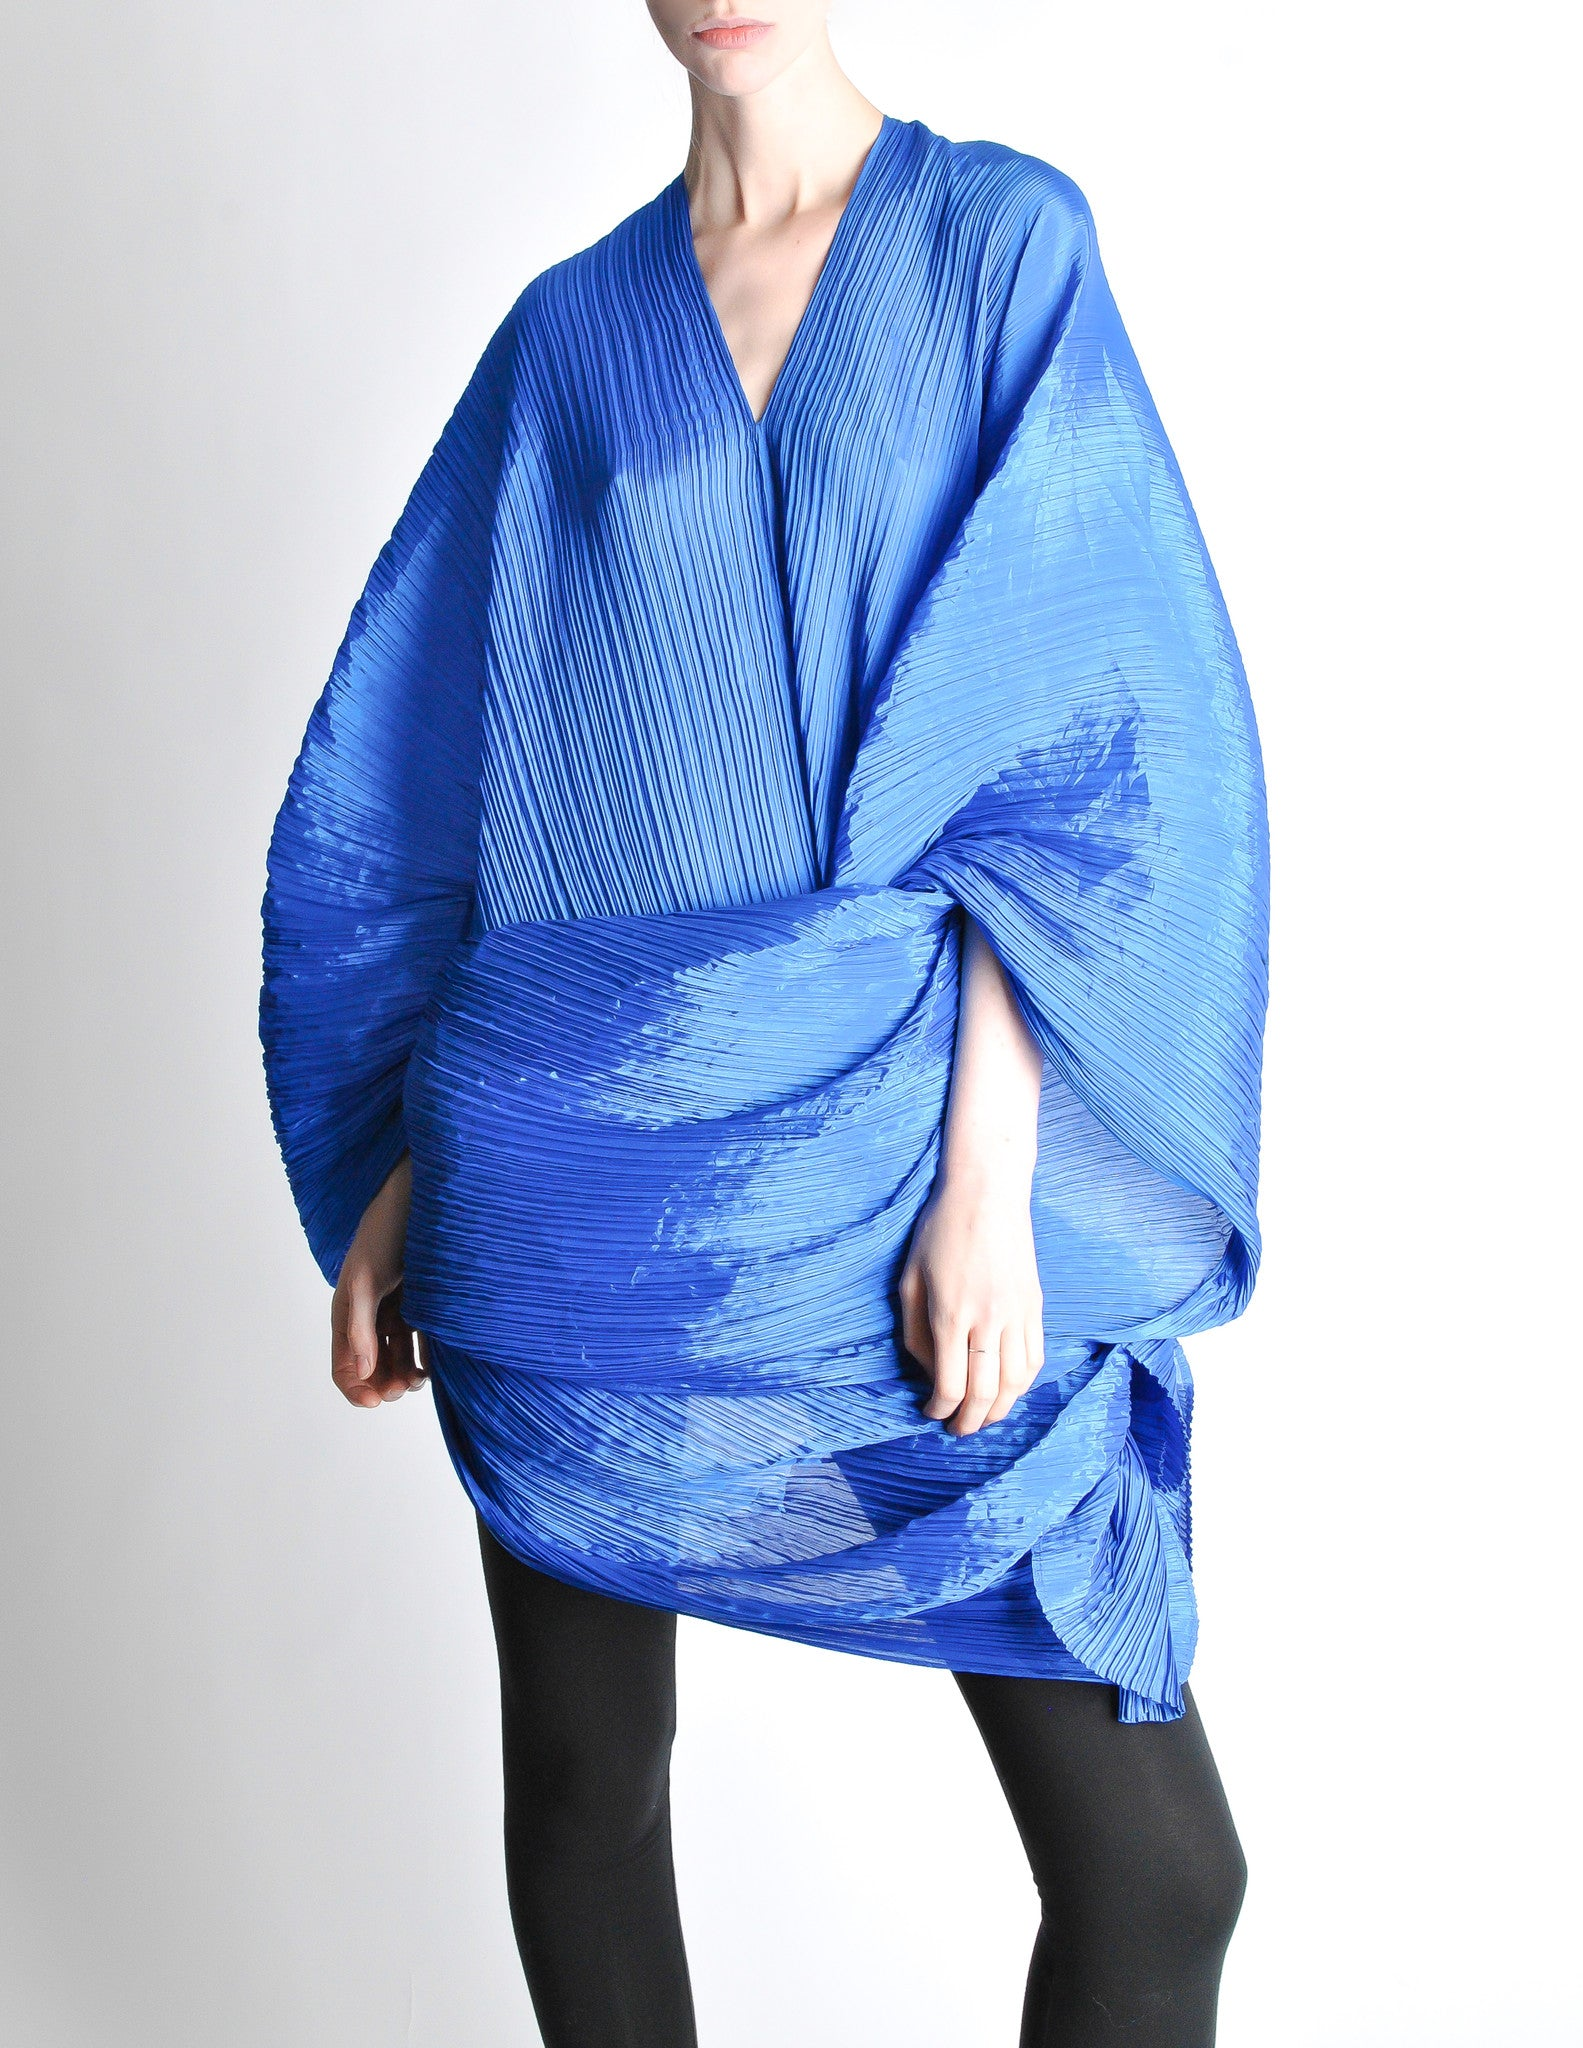 Issey Miyake Pleats Please Vintage Blue Pleated Multi Functional Wrap From Amarcord Vintage